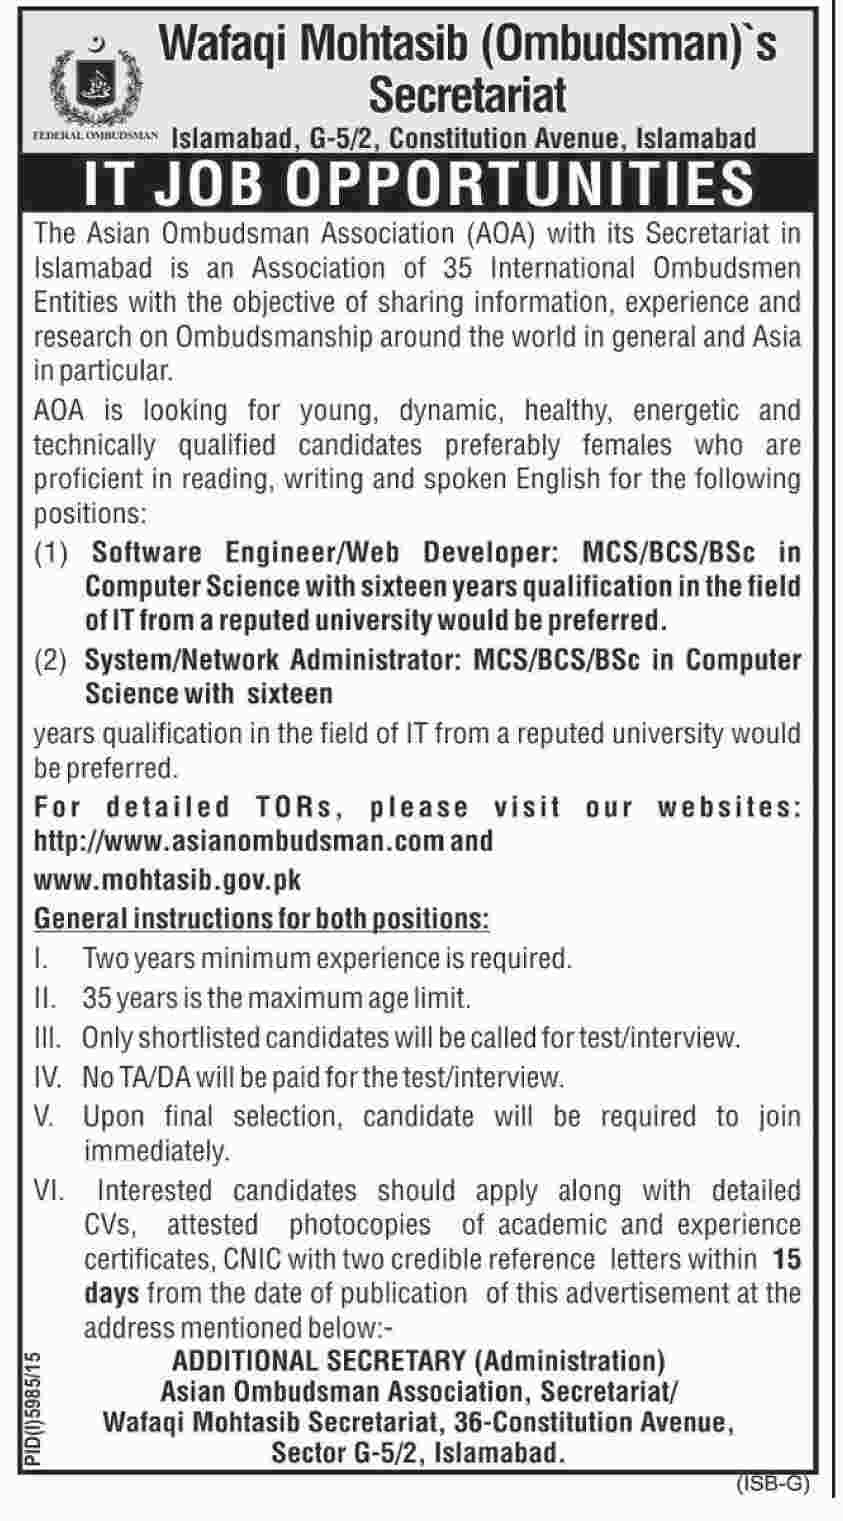 Wafaqi Mohtasib Islamabad Career Opportunities